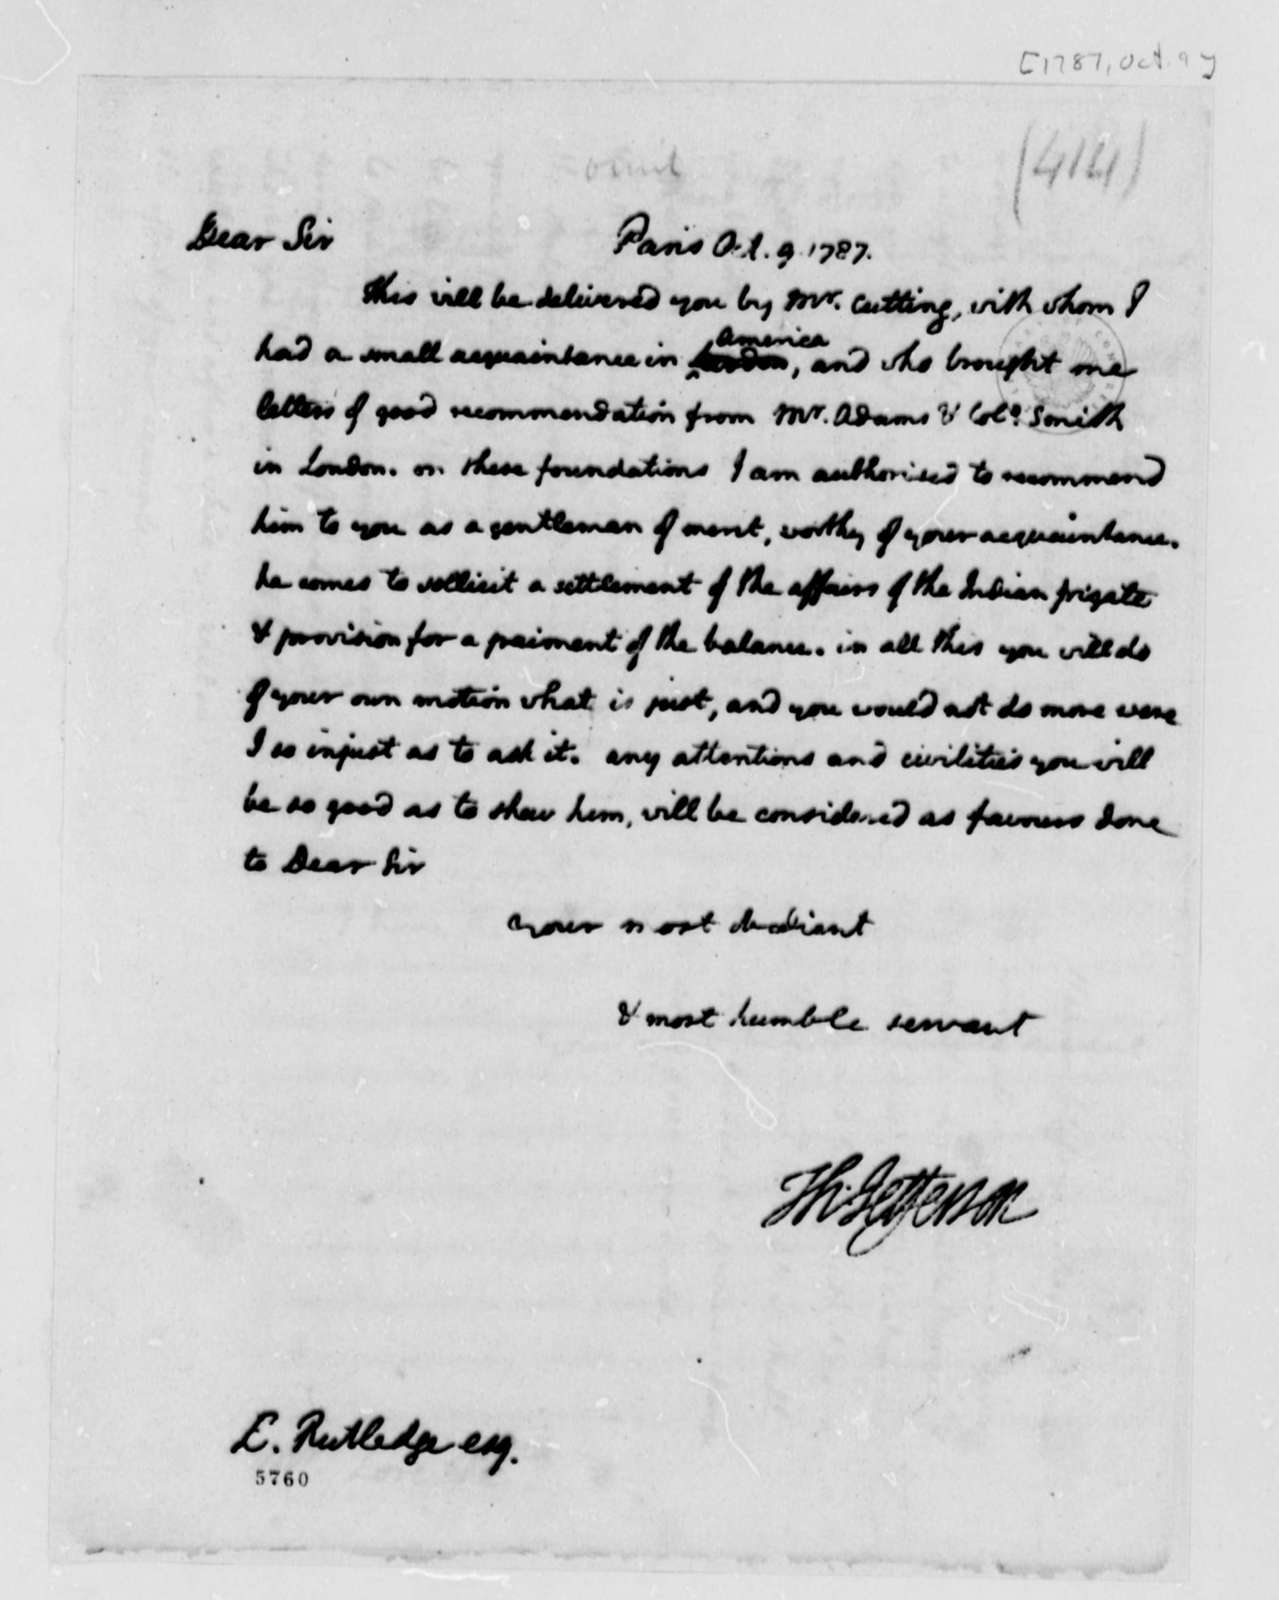 Thomas Jefferson to Edward Rutledge, October 9, 1787